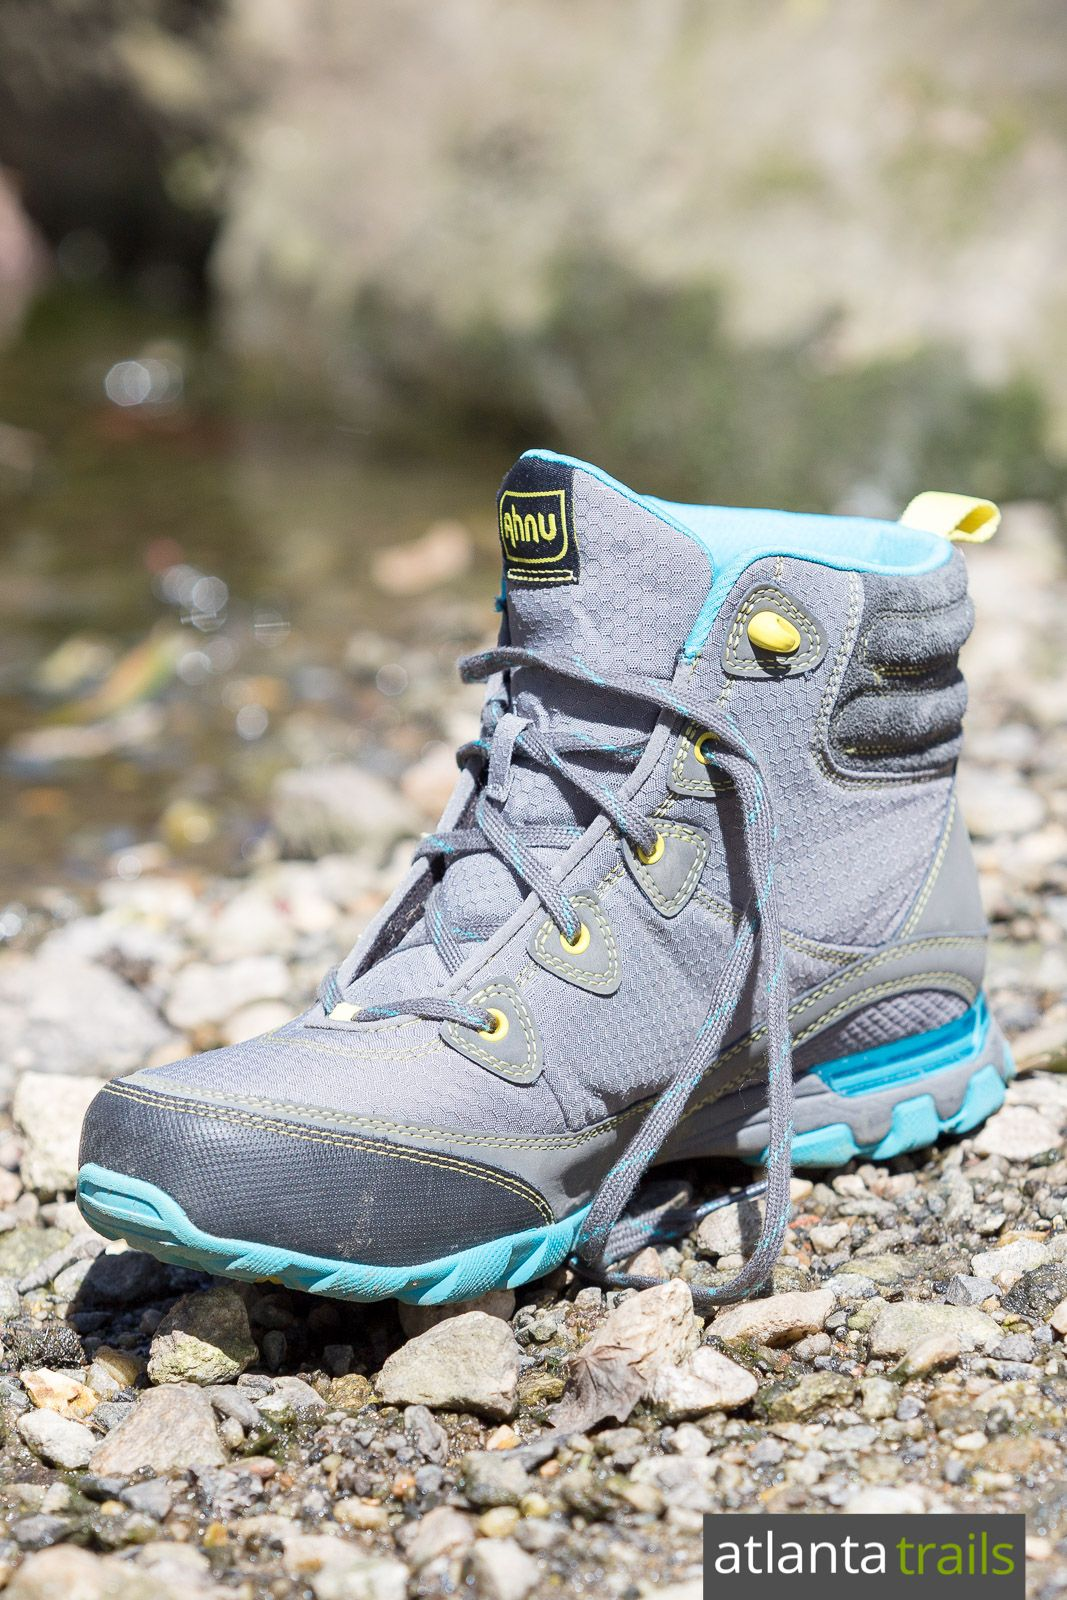 The Womens Vasque Breeze 2.0 GTX hiking boot is dependably ...